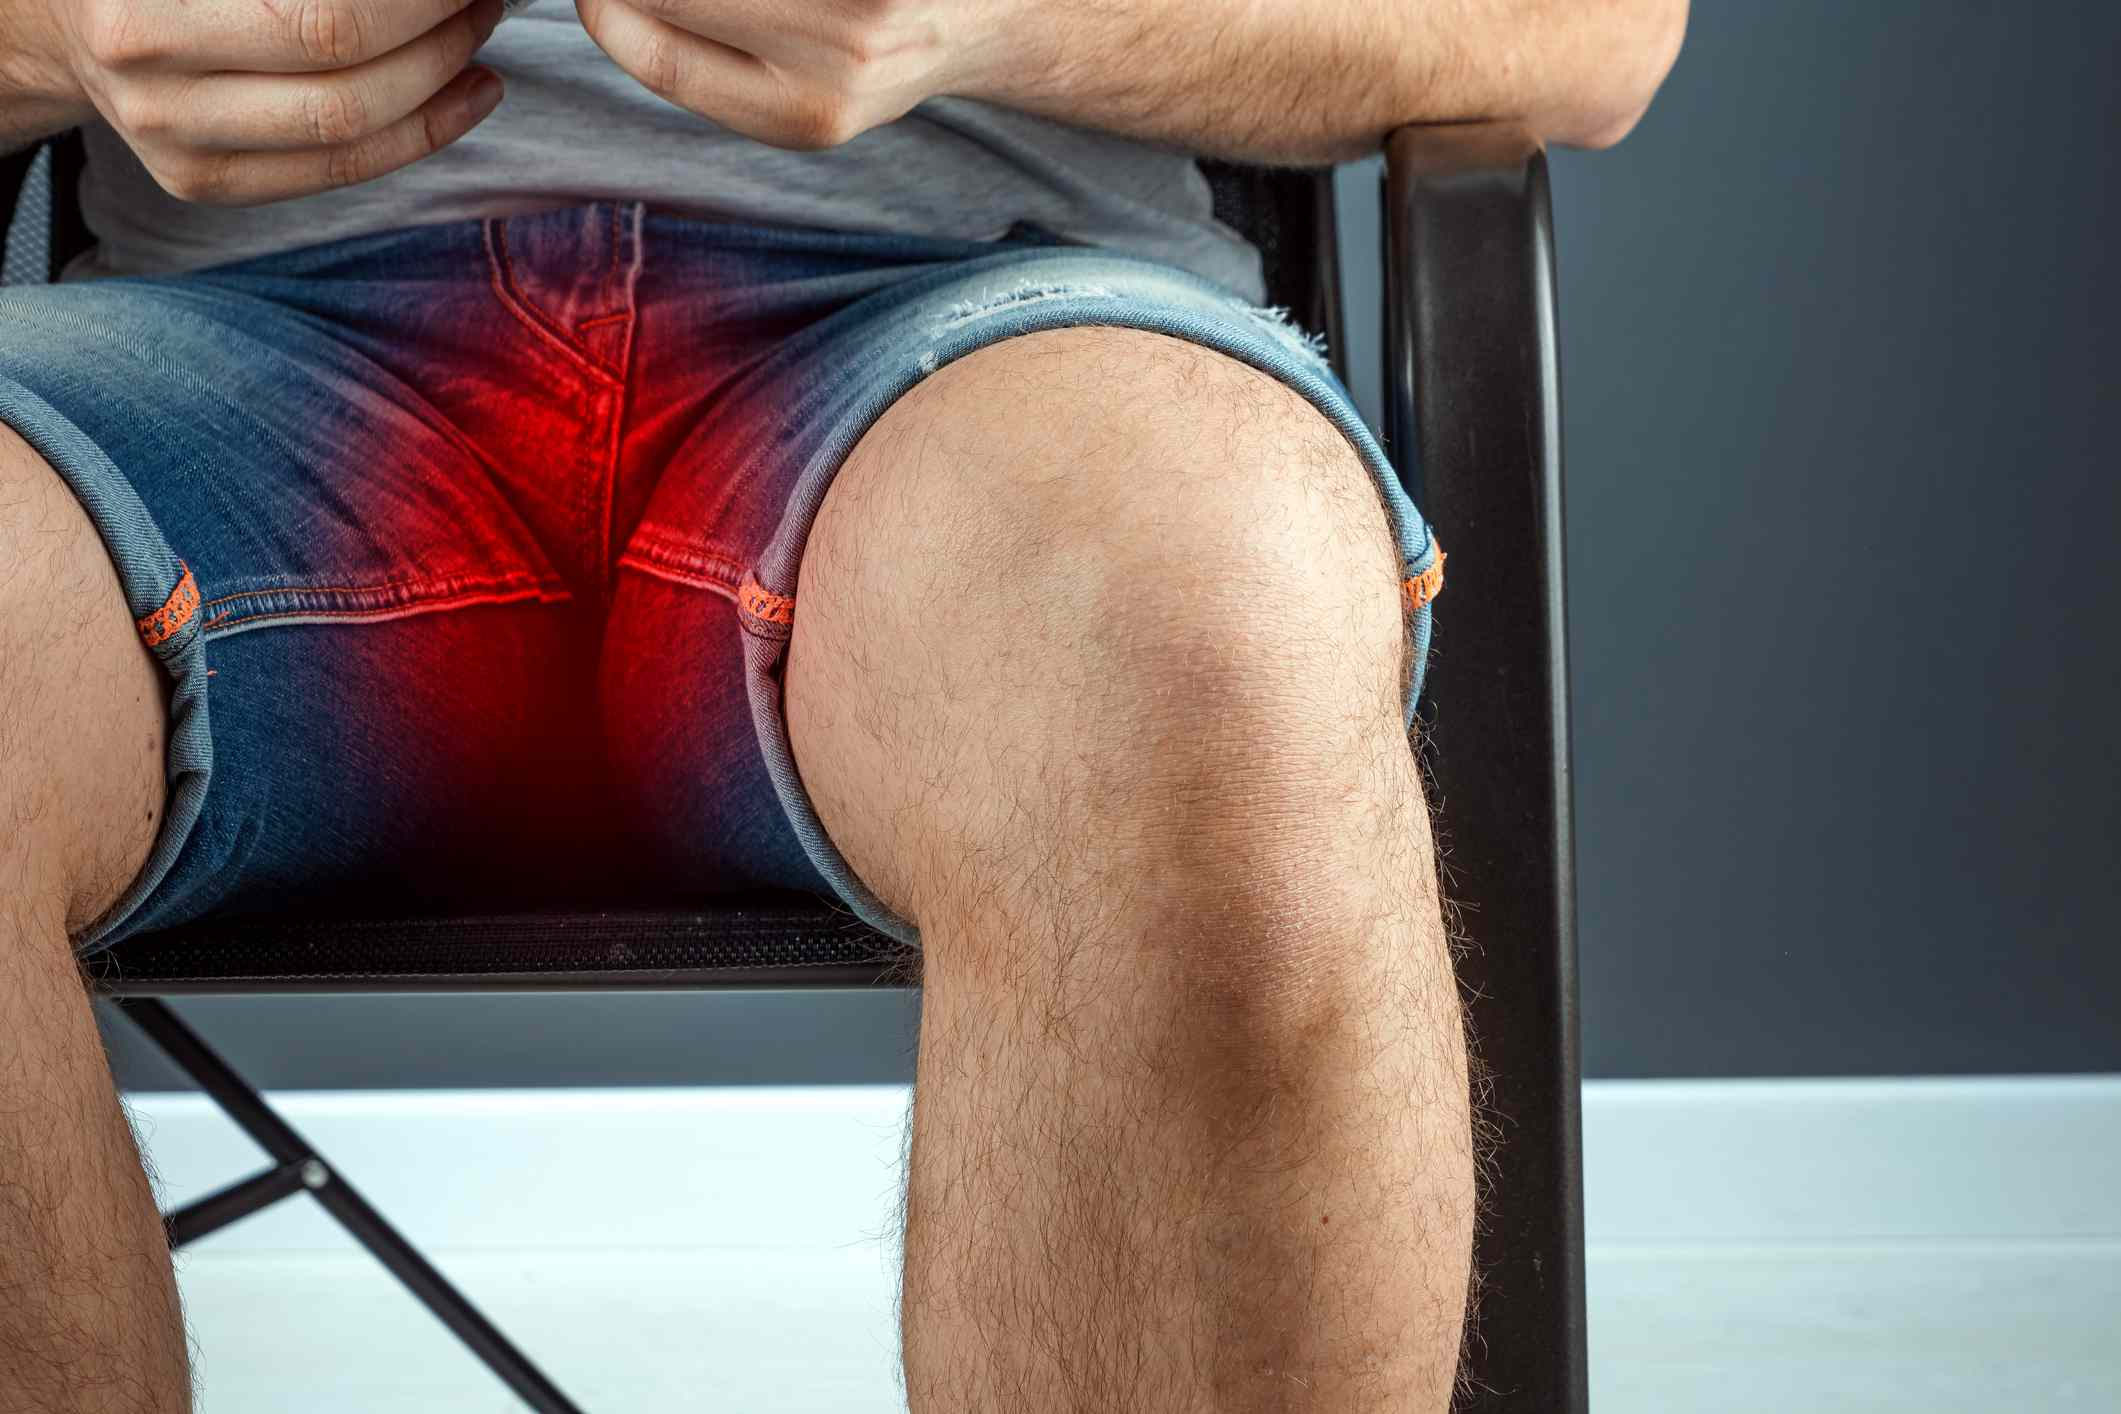 A close up of the pelvis of a man wearing jean shorts sitting on a chair. His groin is highlighted red.